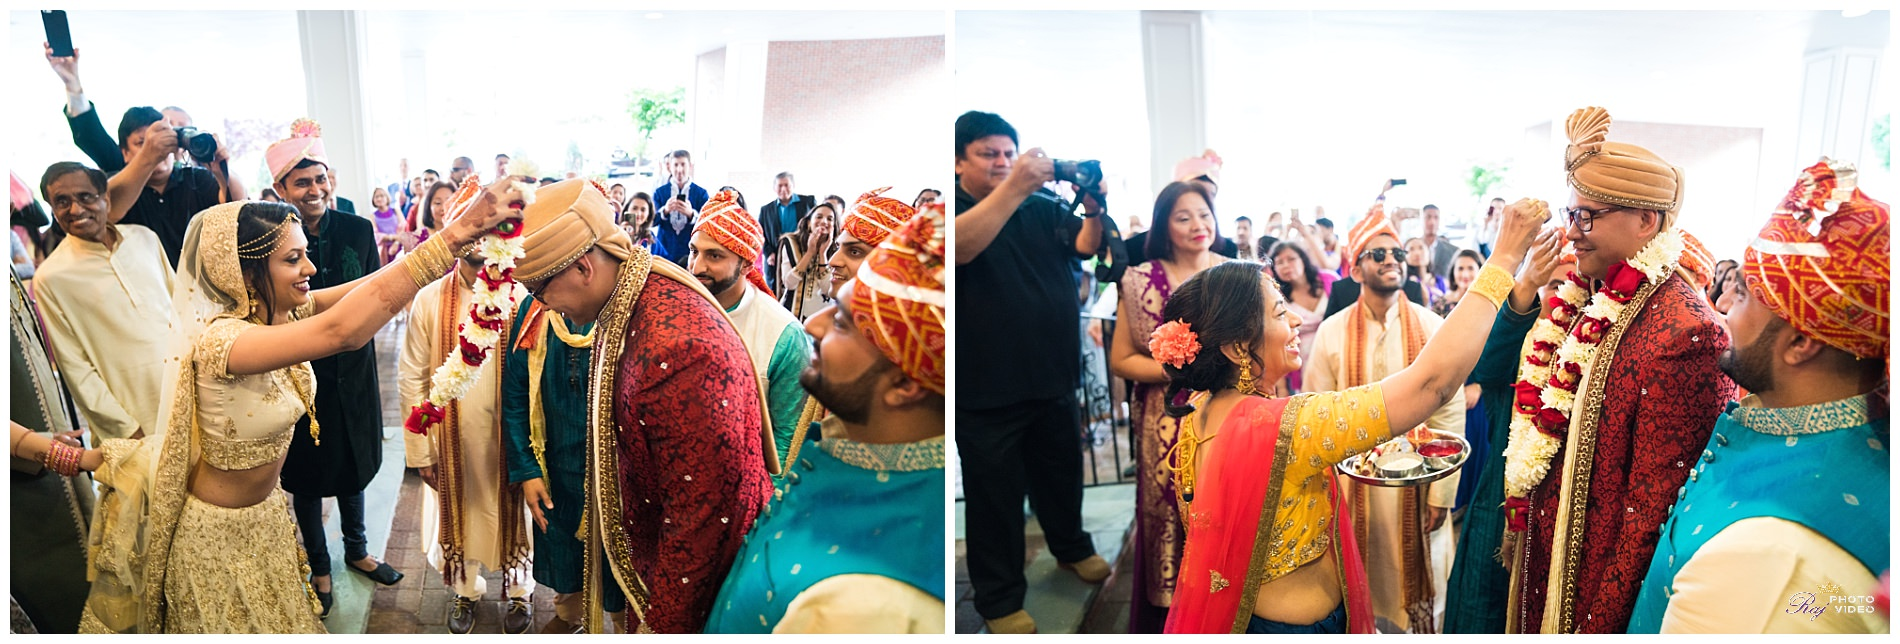 Aashirwad-Palace-Randolph-NJ-Hindu-Wedding-Ceremony-Khusbu-Jeff-6.jpg